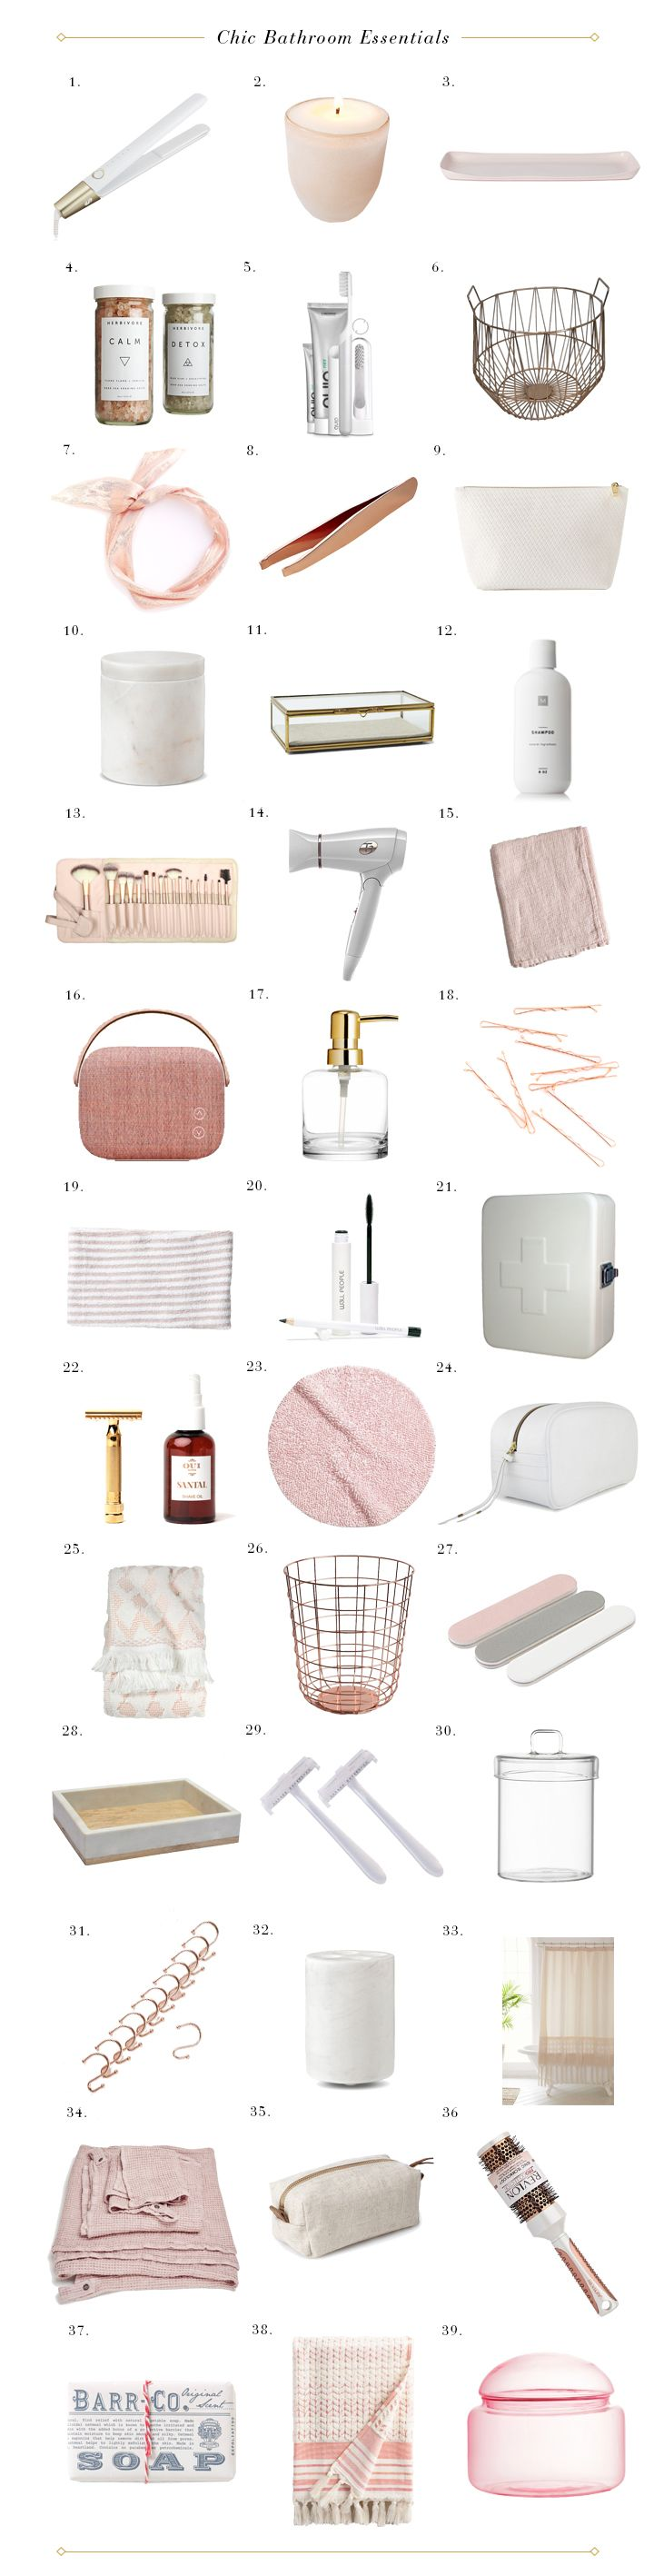 Web Image Gallery Chic Pink and White Bathroom Essentials